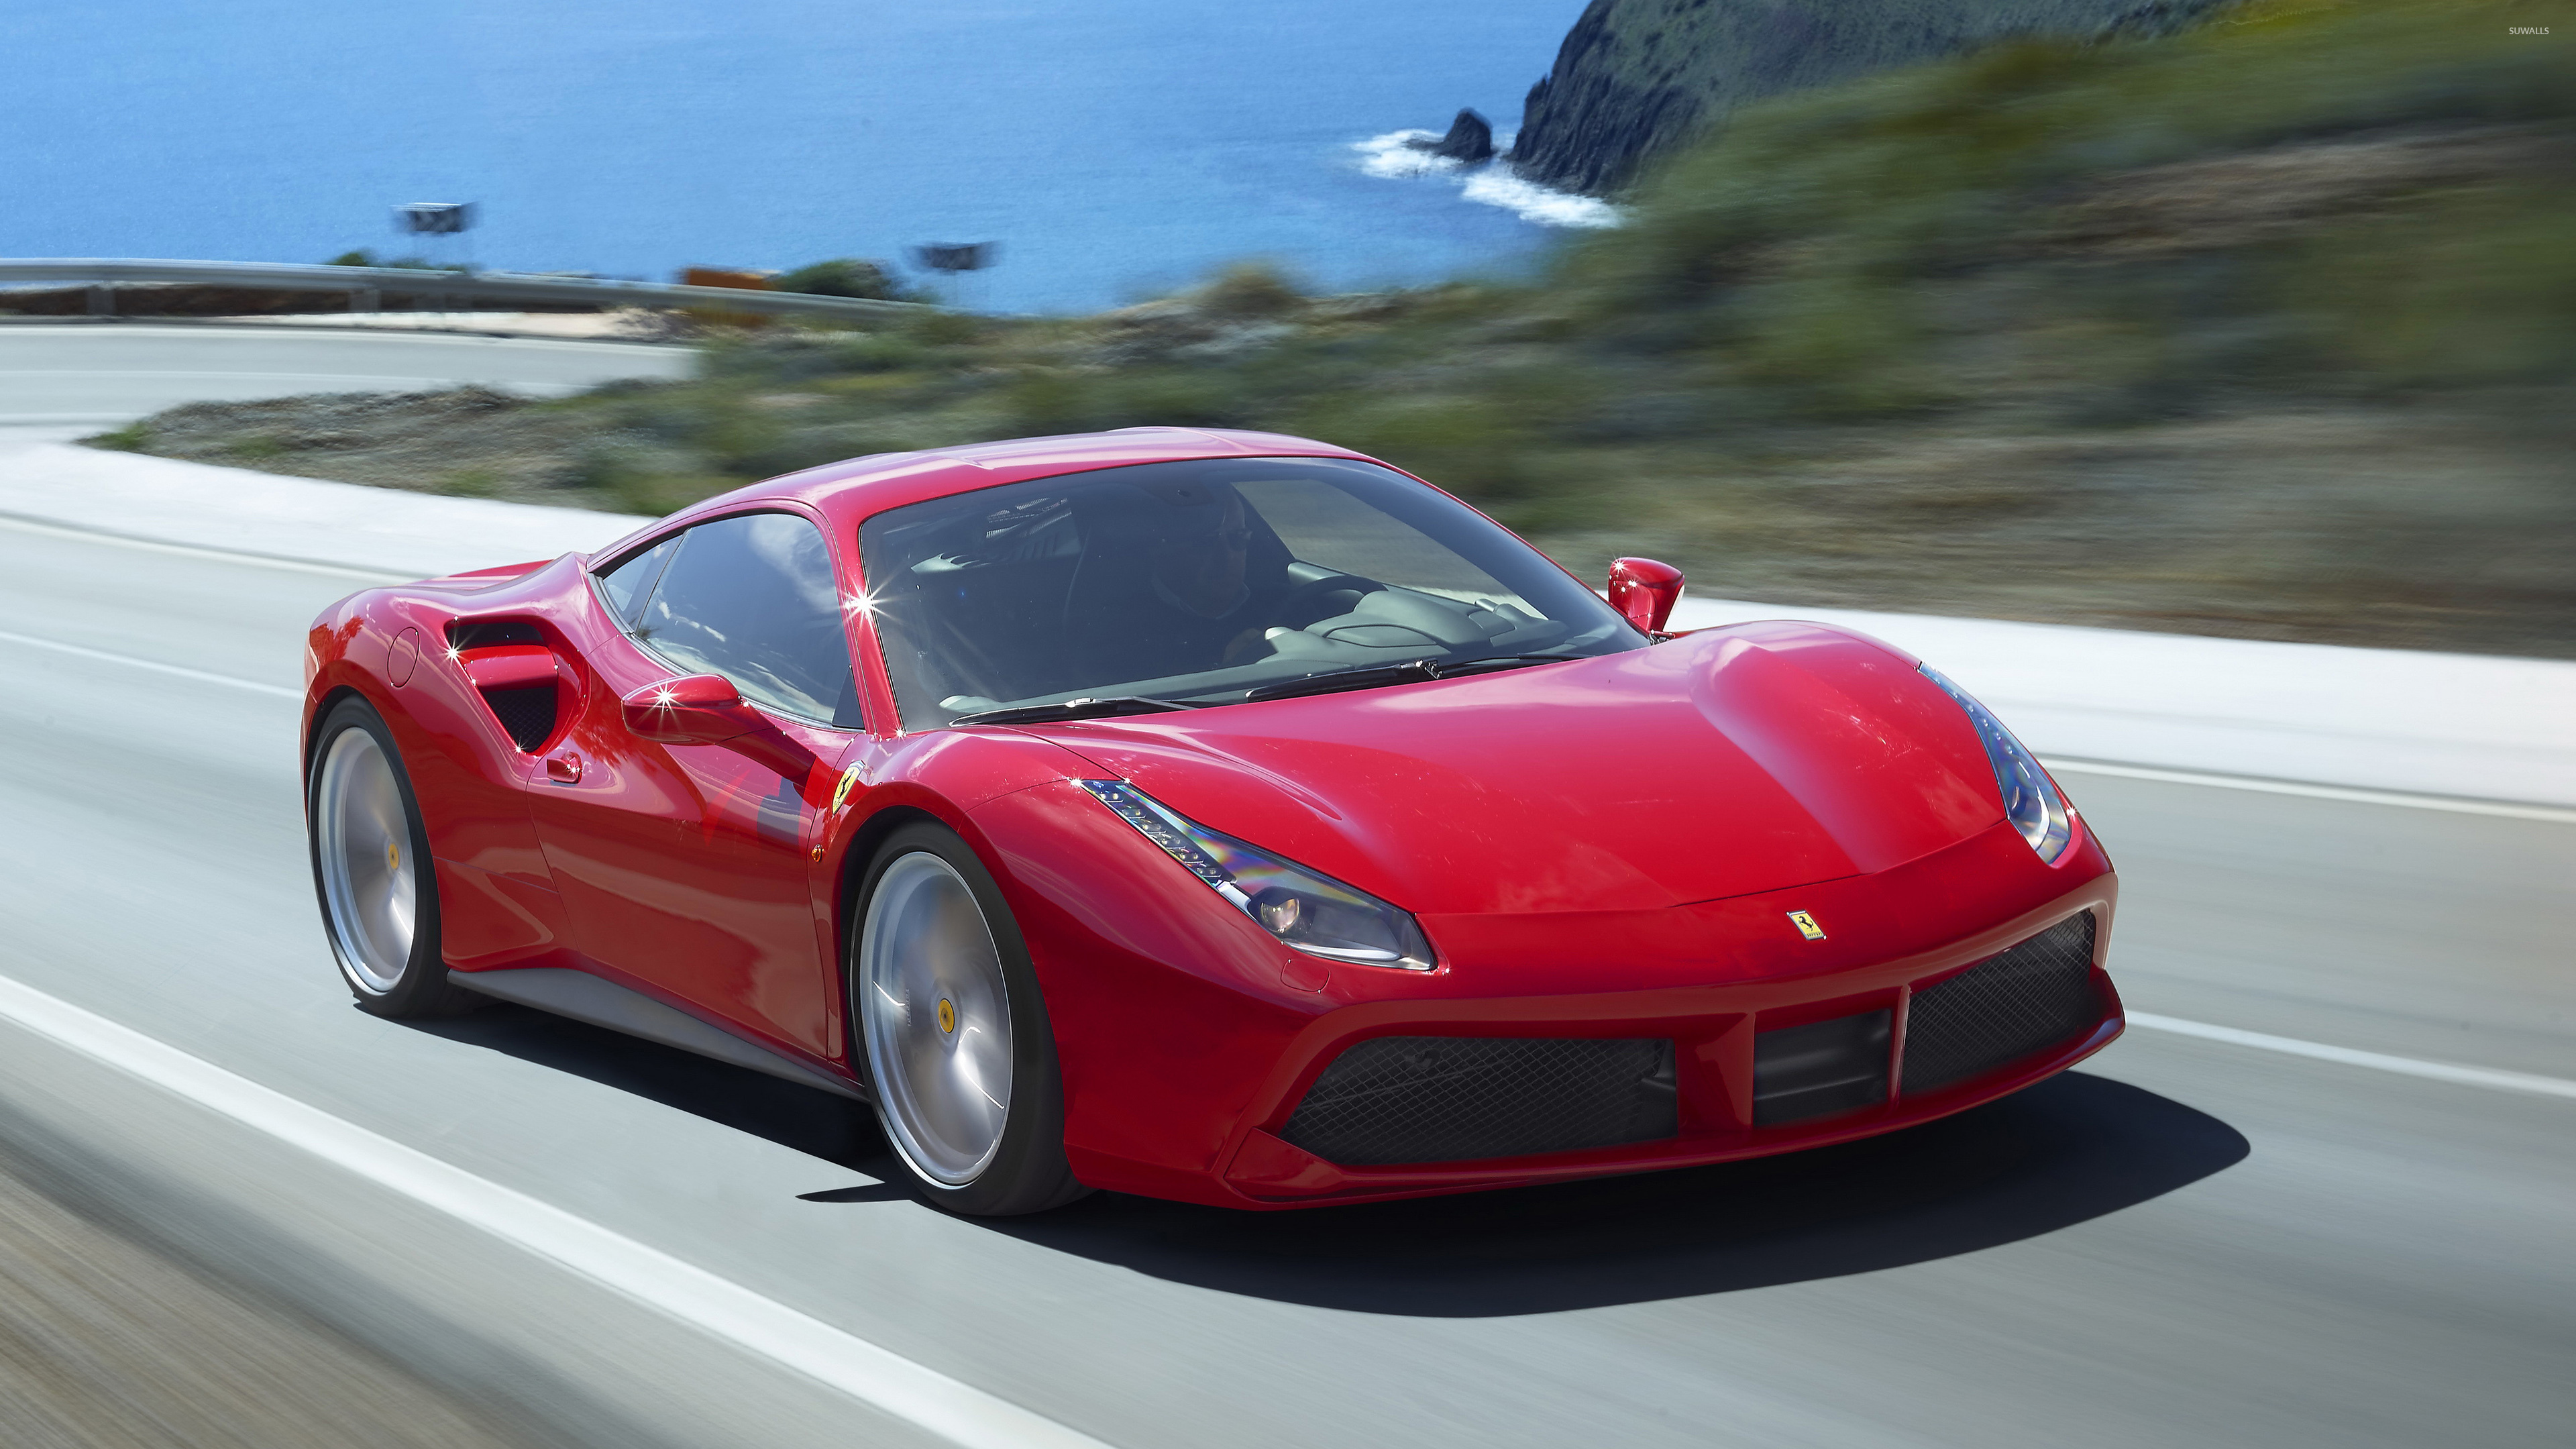 Red Ferrari 488 Gtb On The Road Wallpaper Car Wallpapers 49870